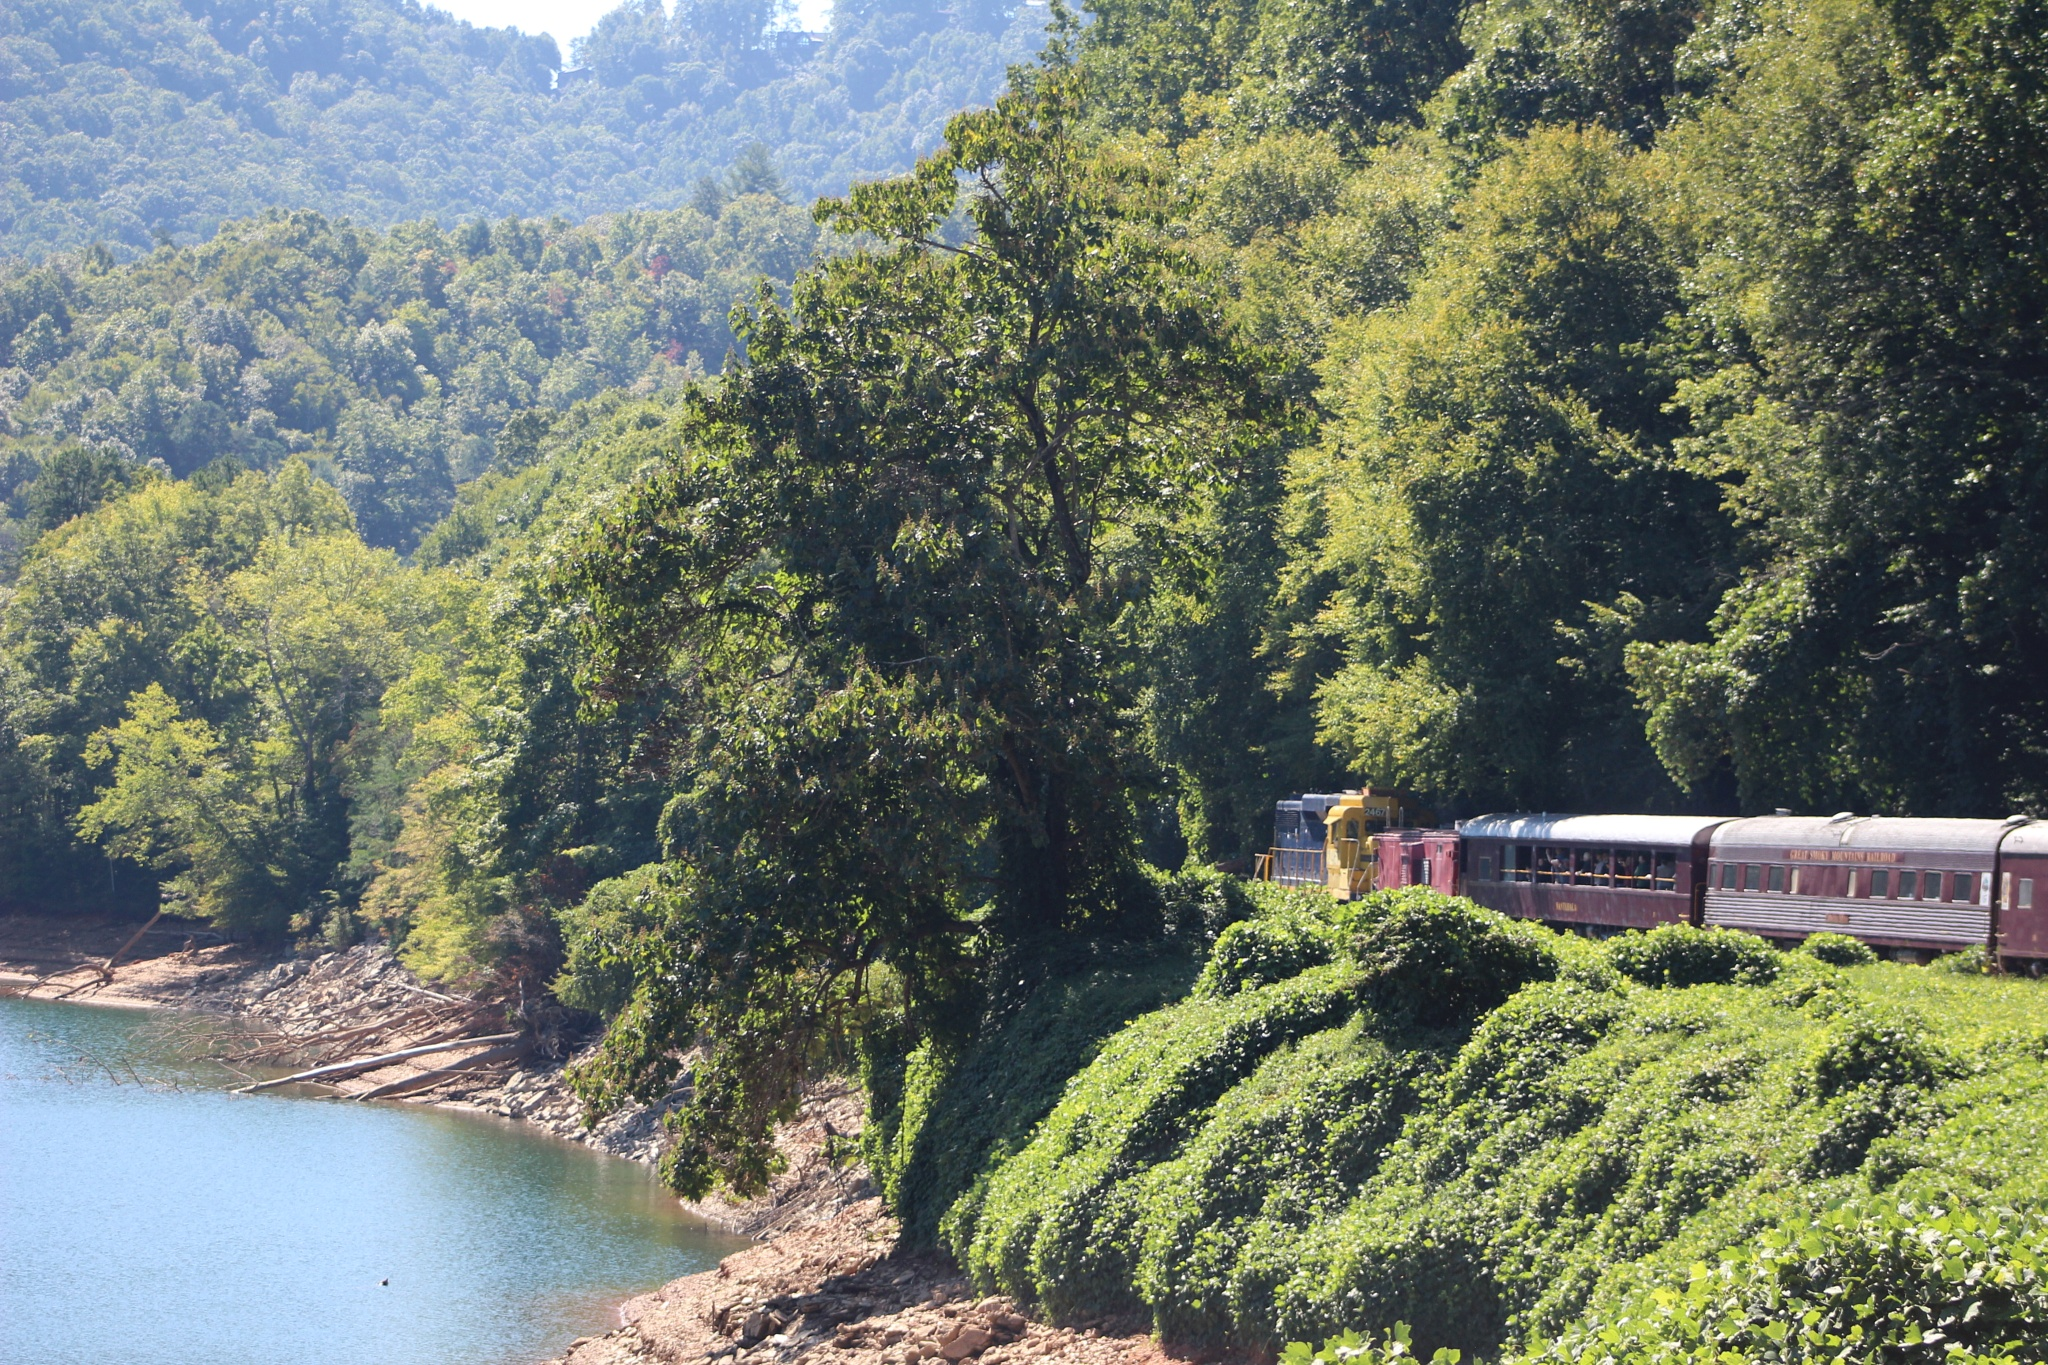 Train thru the gorge by MORCINDERS